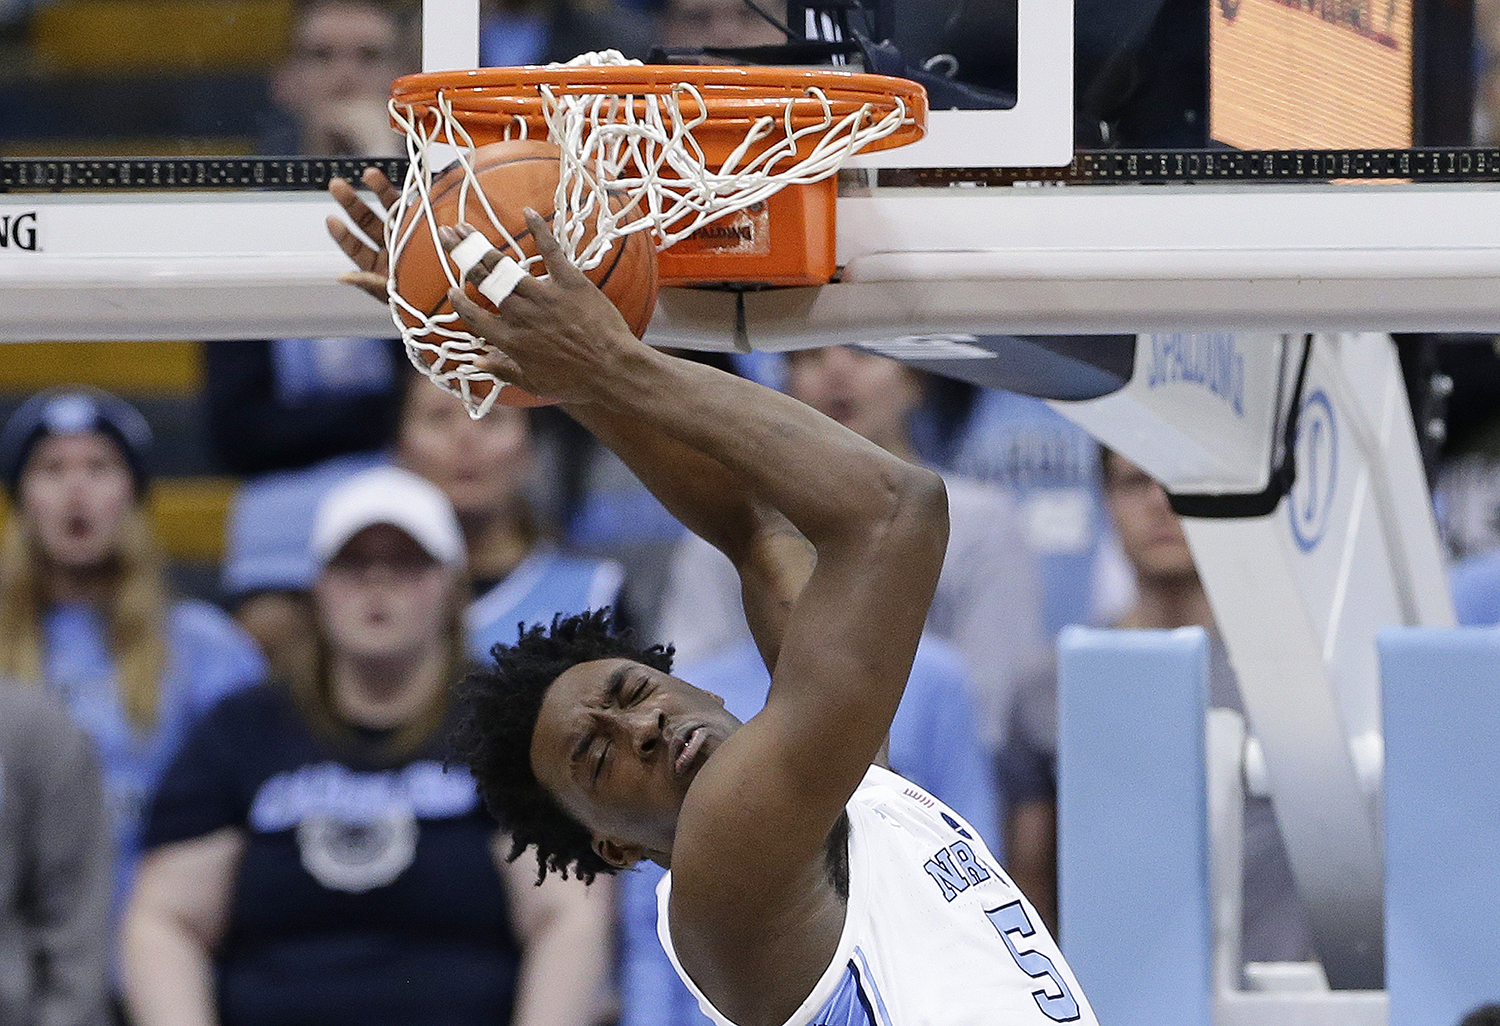 "<div class=""meta image-caption""><div class=""origin-logo origin-image ap""><span>AP</span></div><span class=""caption-text"">North Carolina's Nassir Little dunks during the second half of the team's NCAA college basketball game against Notre Dame in Chapel Hill. (Gerry Broome)</span></div>"